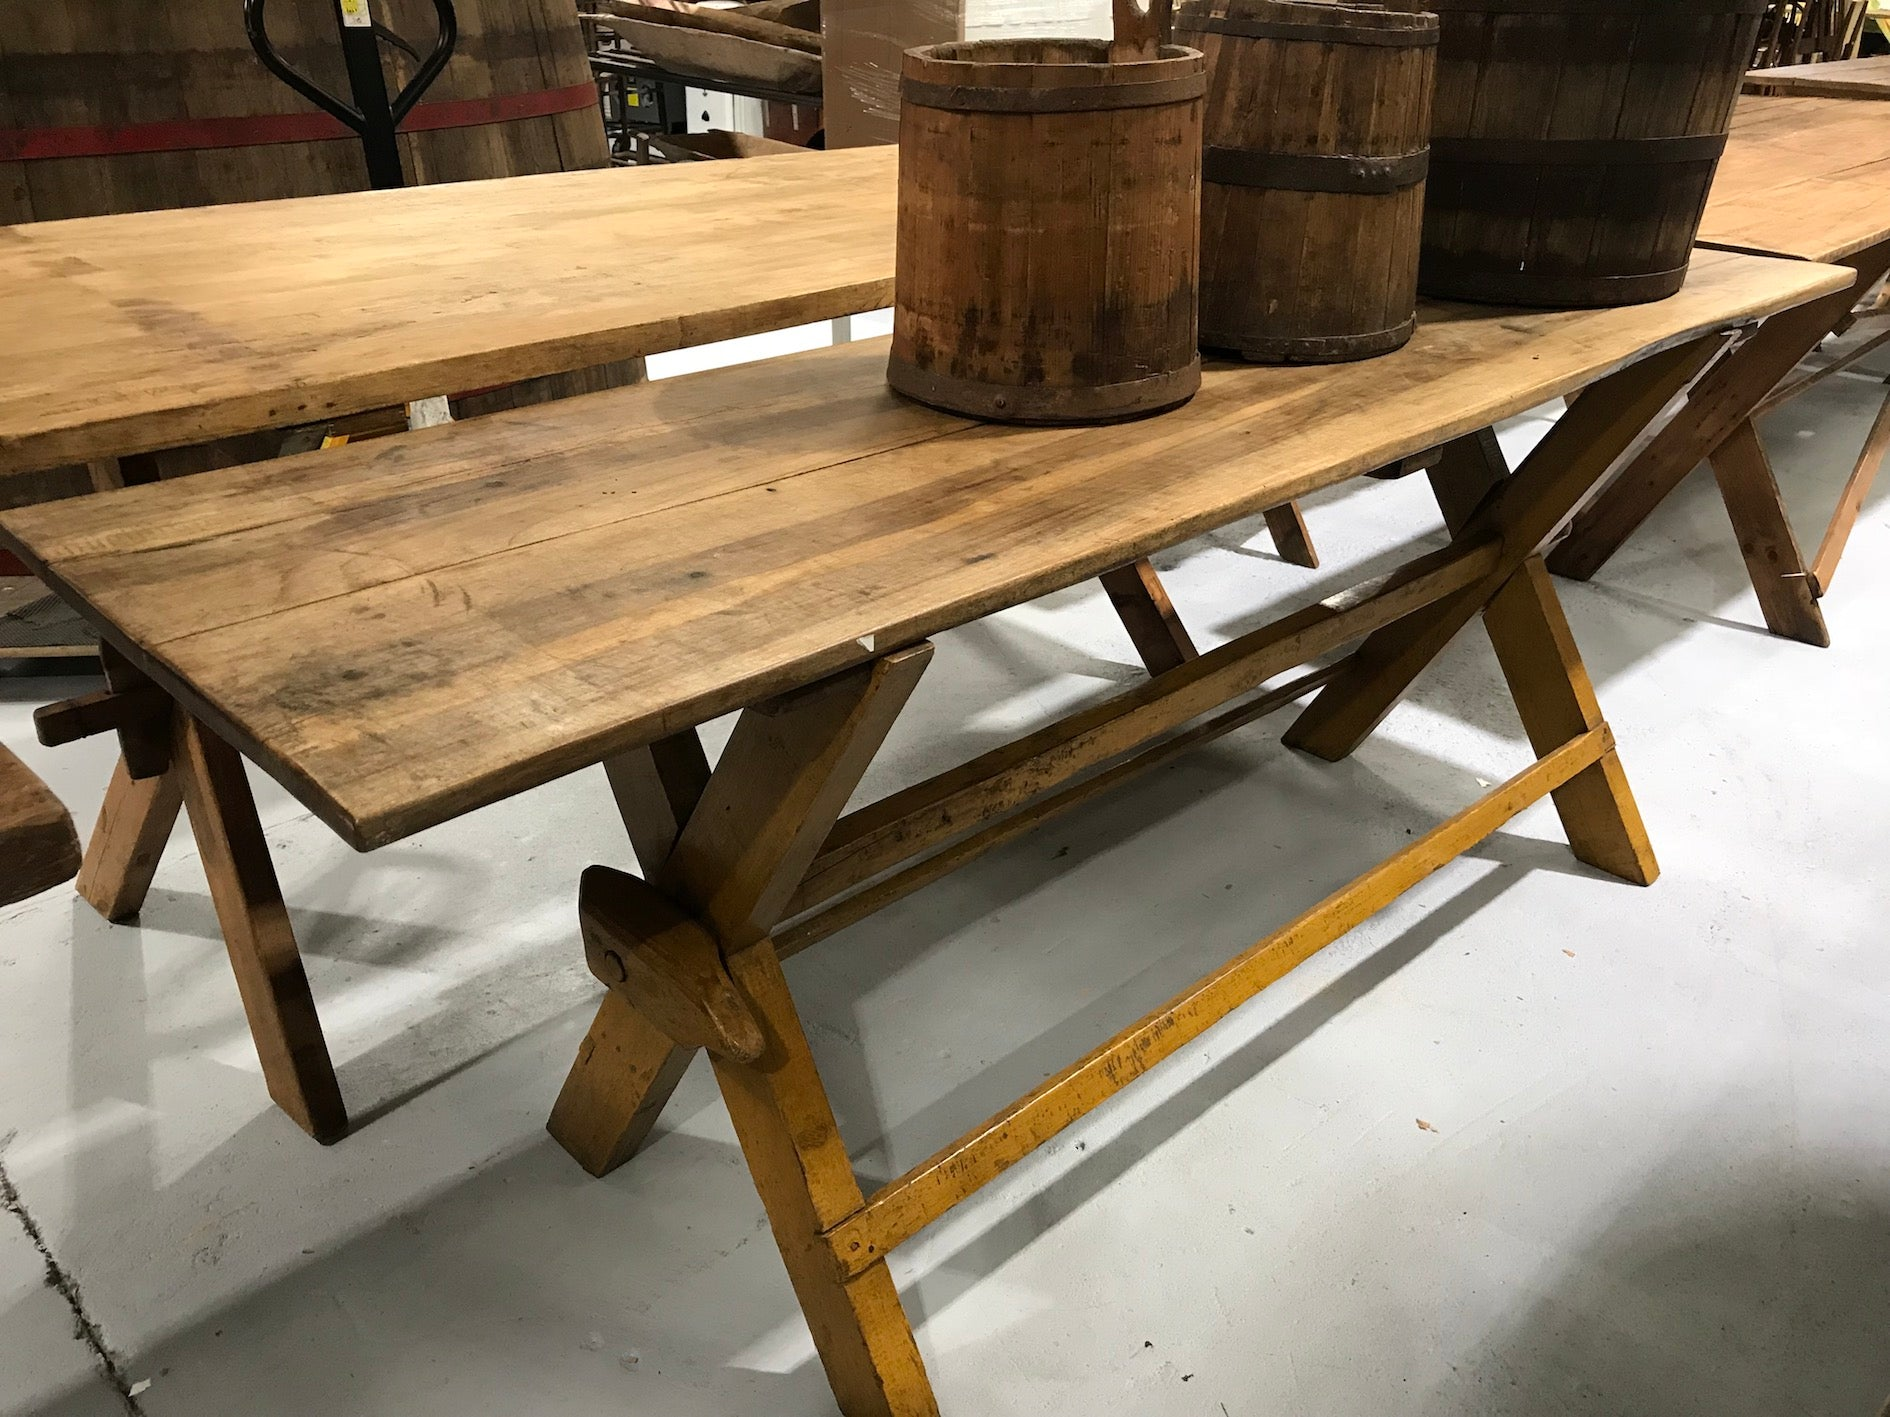 Vintage industrial European kitchen farmhouse dining table 2.2 long #1958